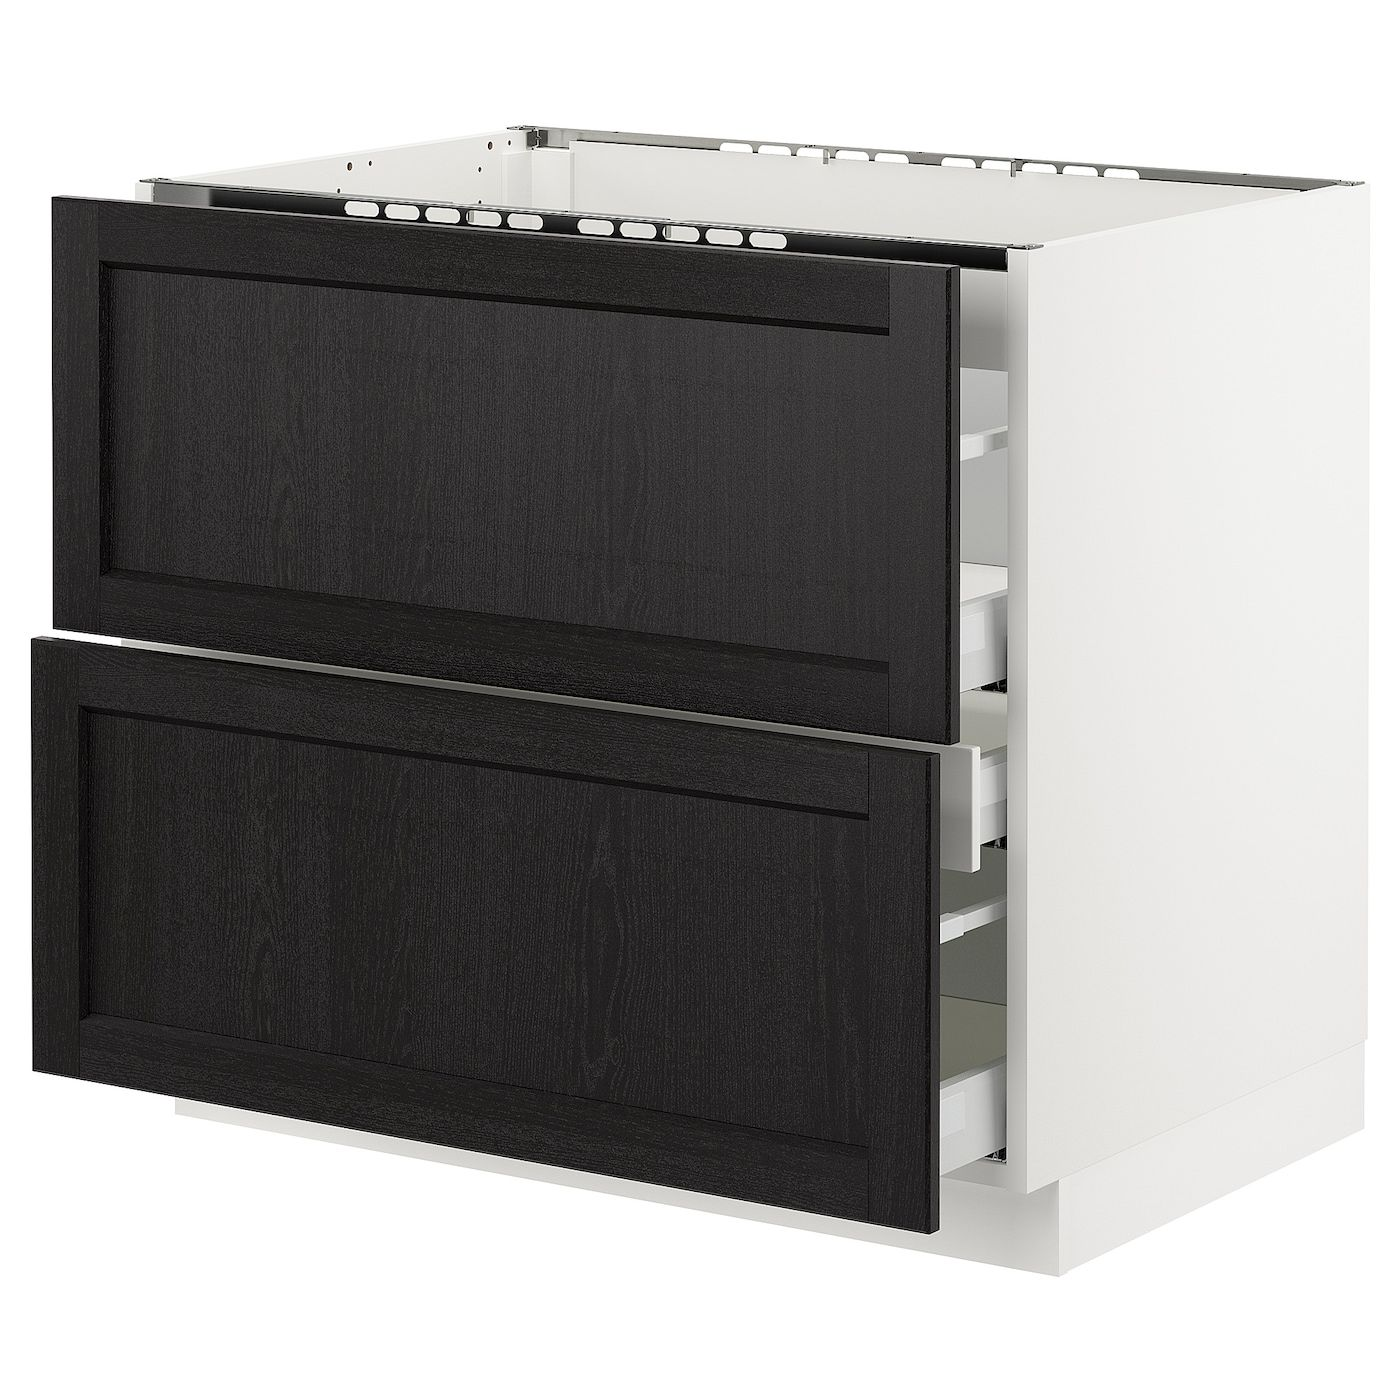 Sektion Base Cabinet F Cooktop W 3 Drawers White Maximera Lerhyttan Black Stained 36x24x30 In 2020 Base Cabinets Drawers Ikea